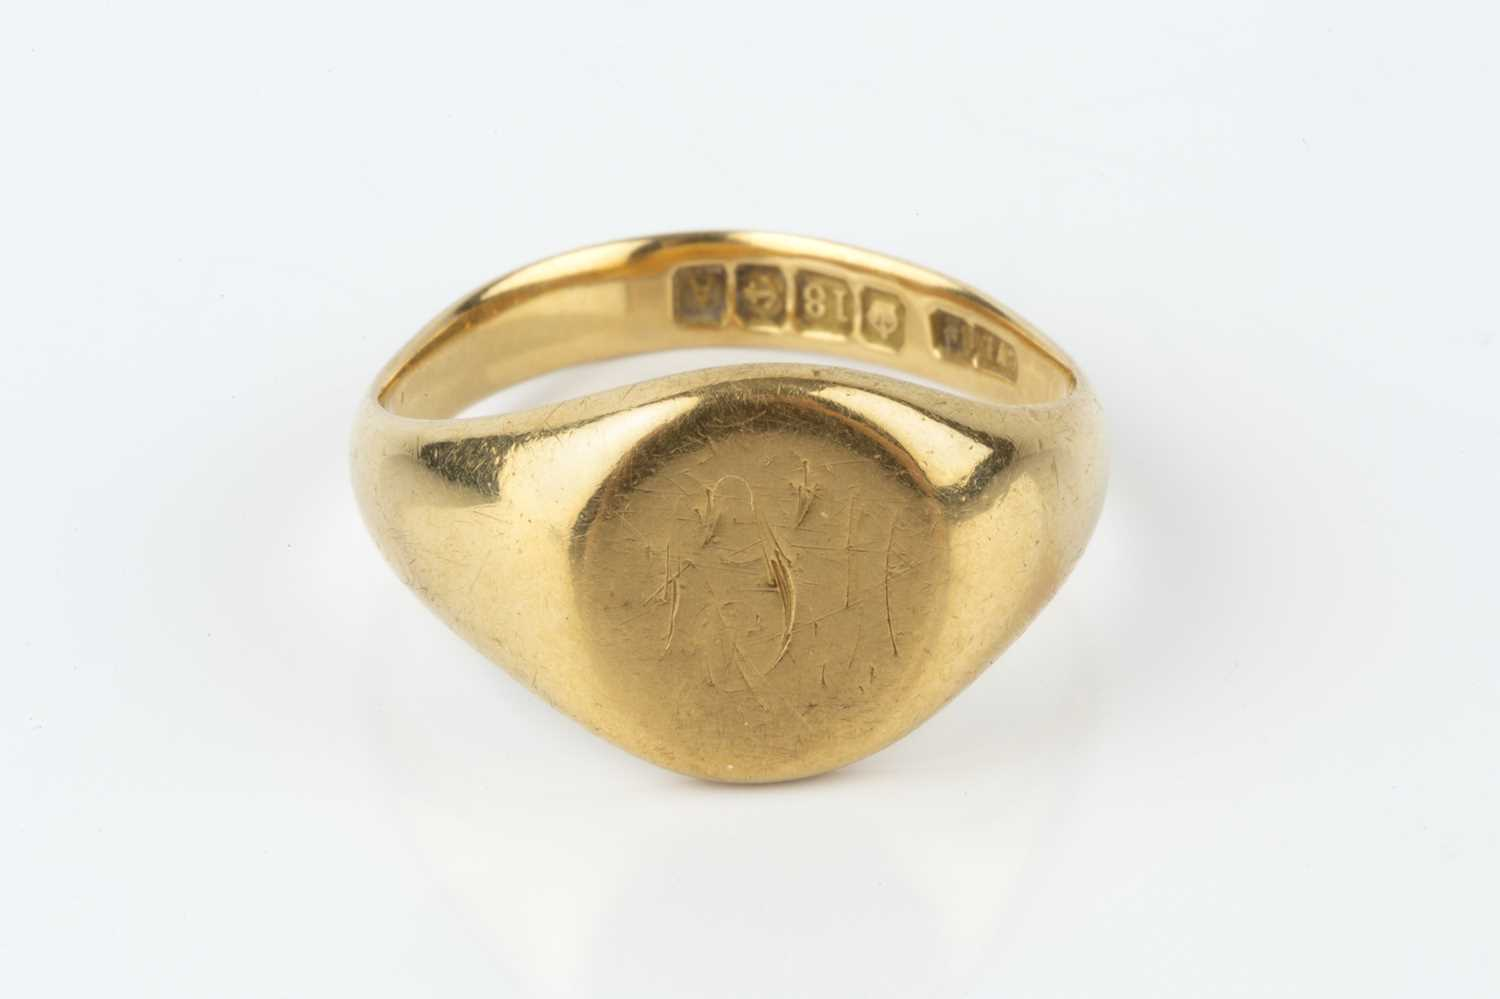 An 18ct gold signet ring, hallmarked for Birmingham 1925, monogrammed, ring size approximately